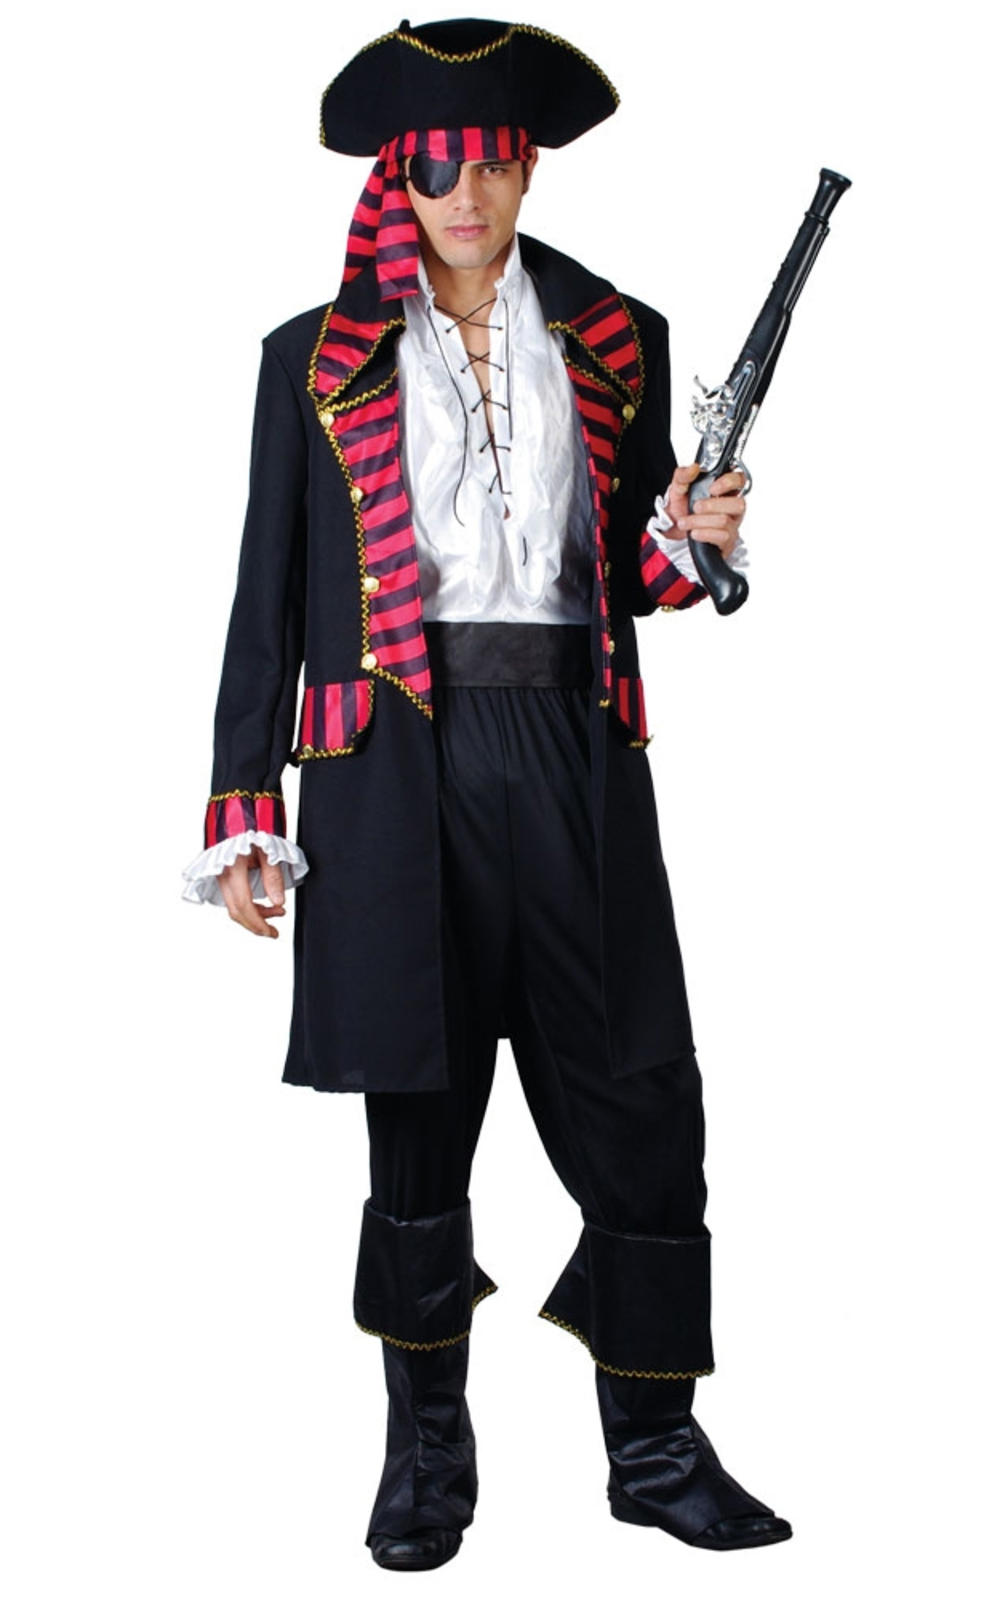 Deluxe Pirate Captain Mens Fancy Dress Buccaneer Caribbean Adults Costume Outfit